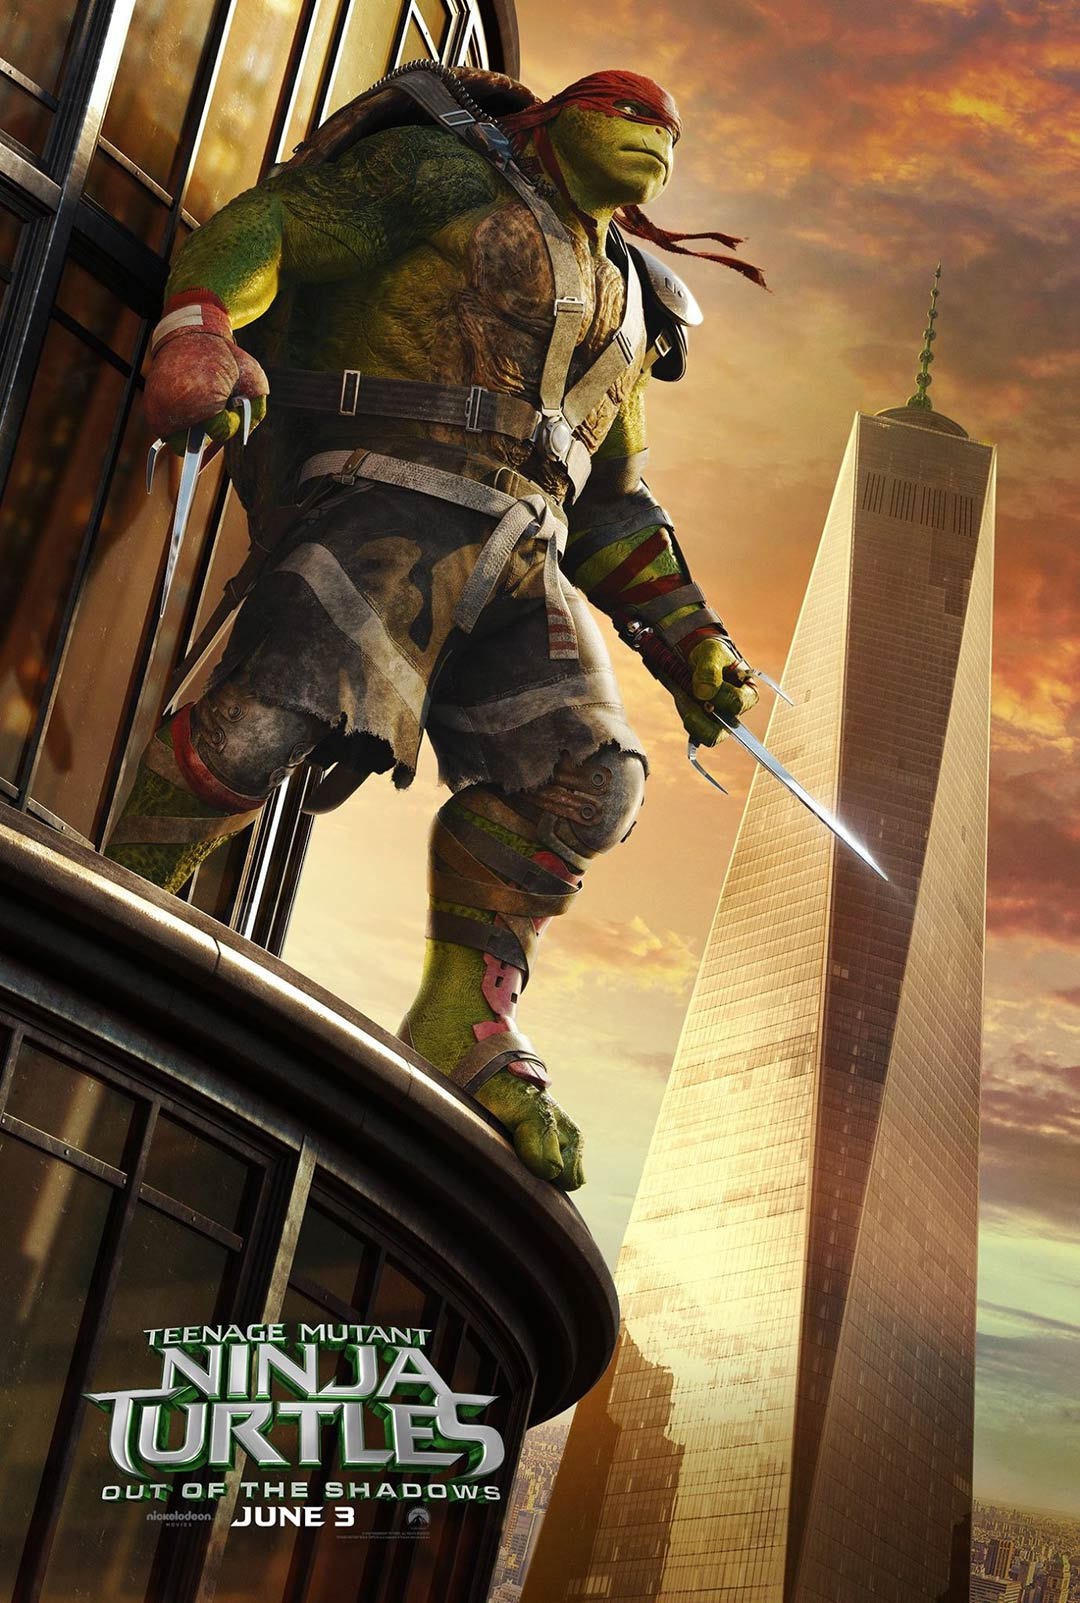 Teenage Mutant Ninja Turtles: Out of the Shadows Poster #4